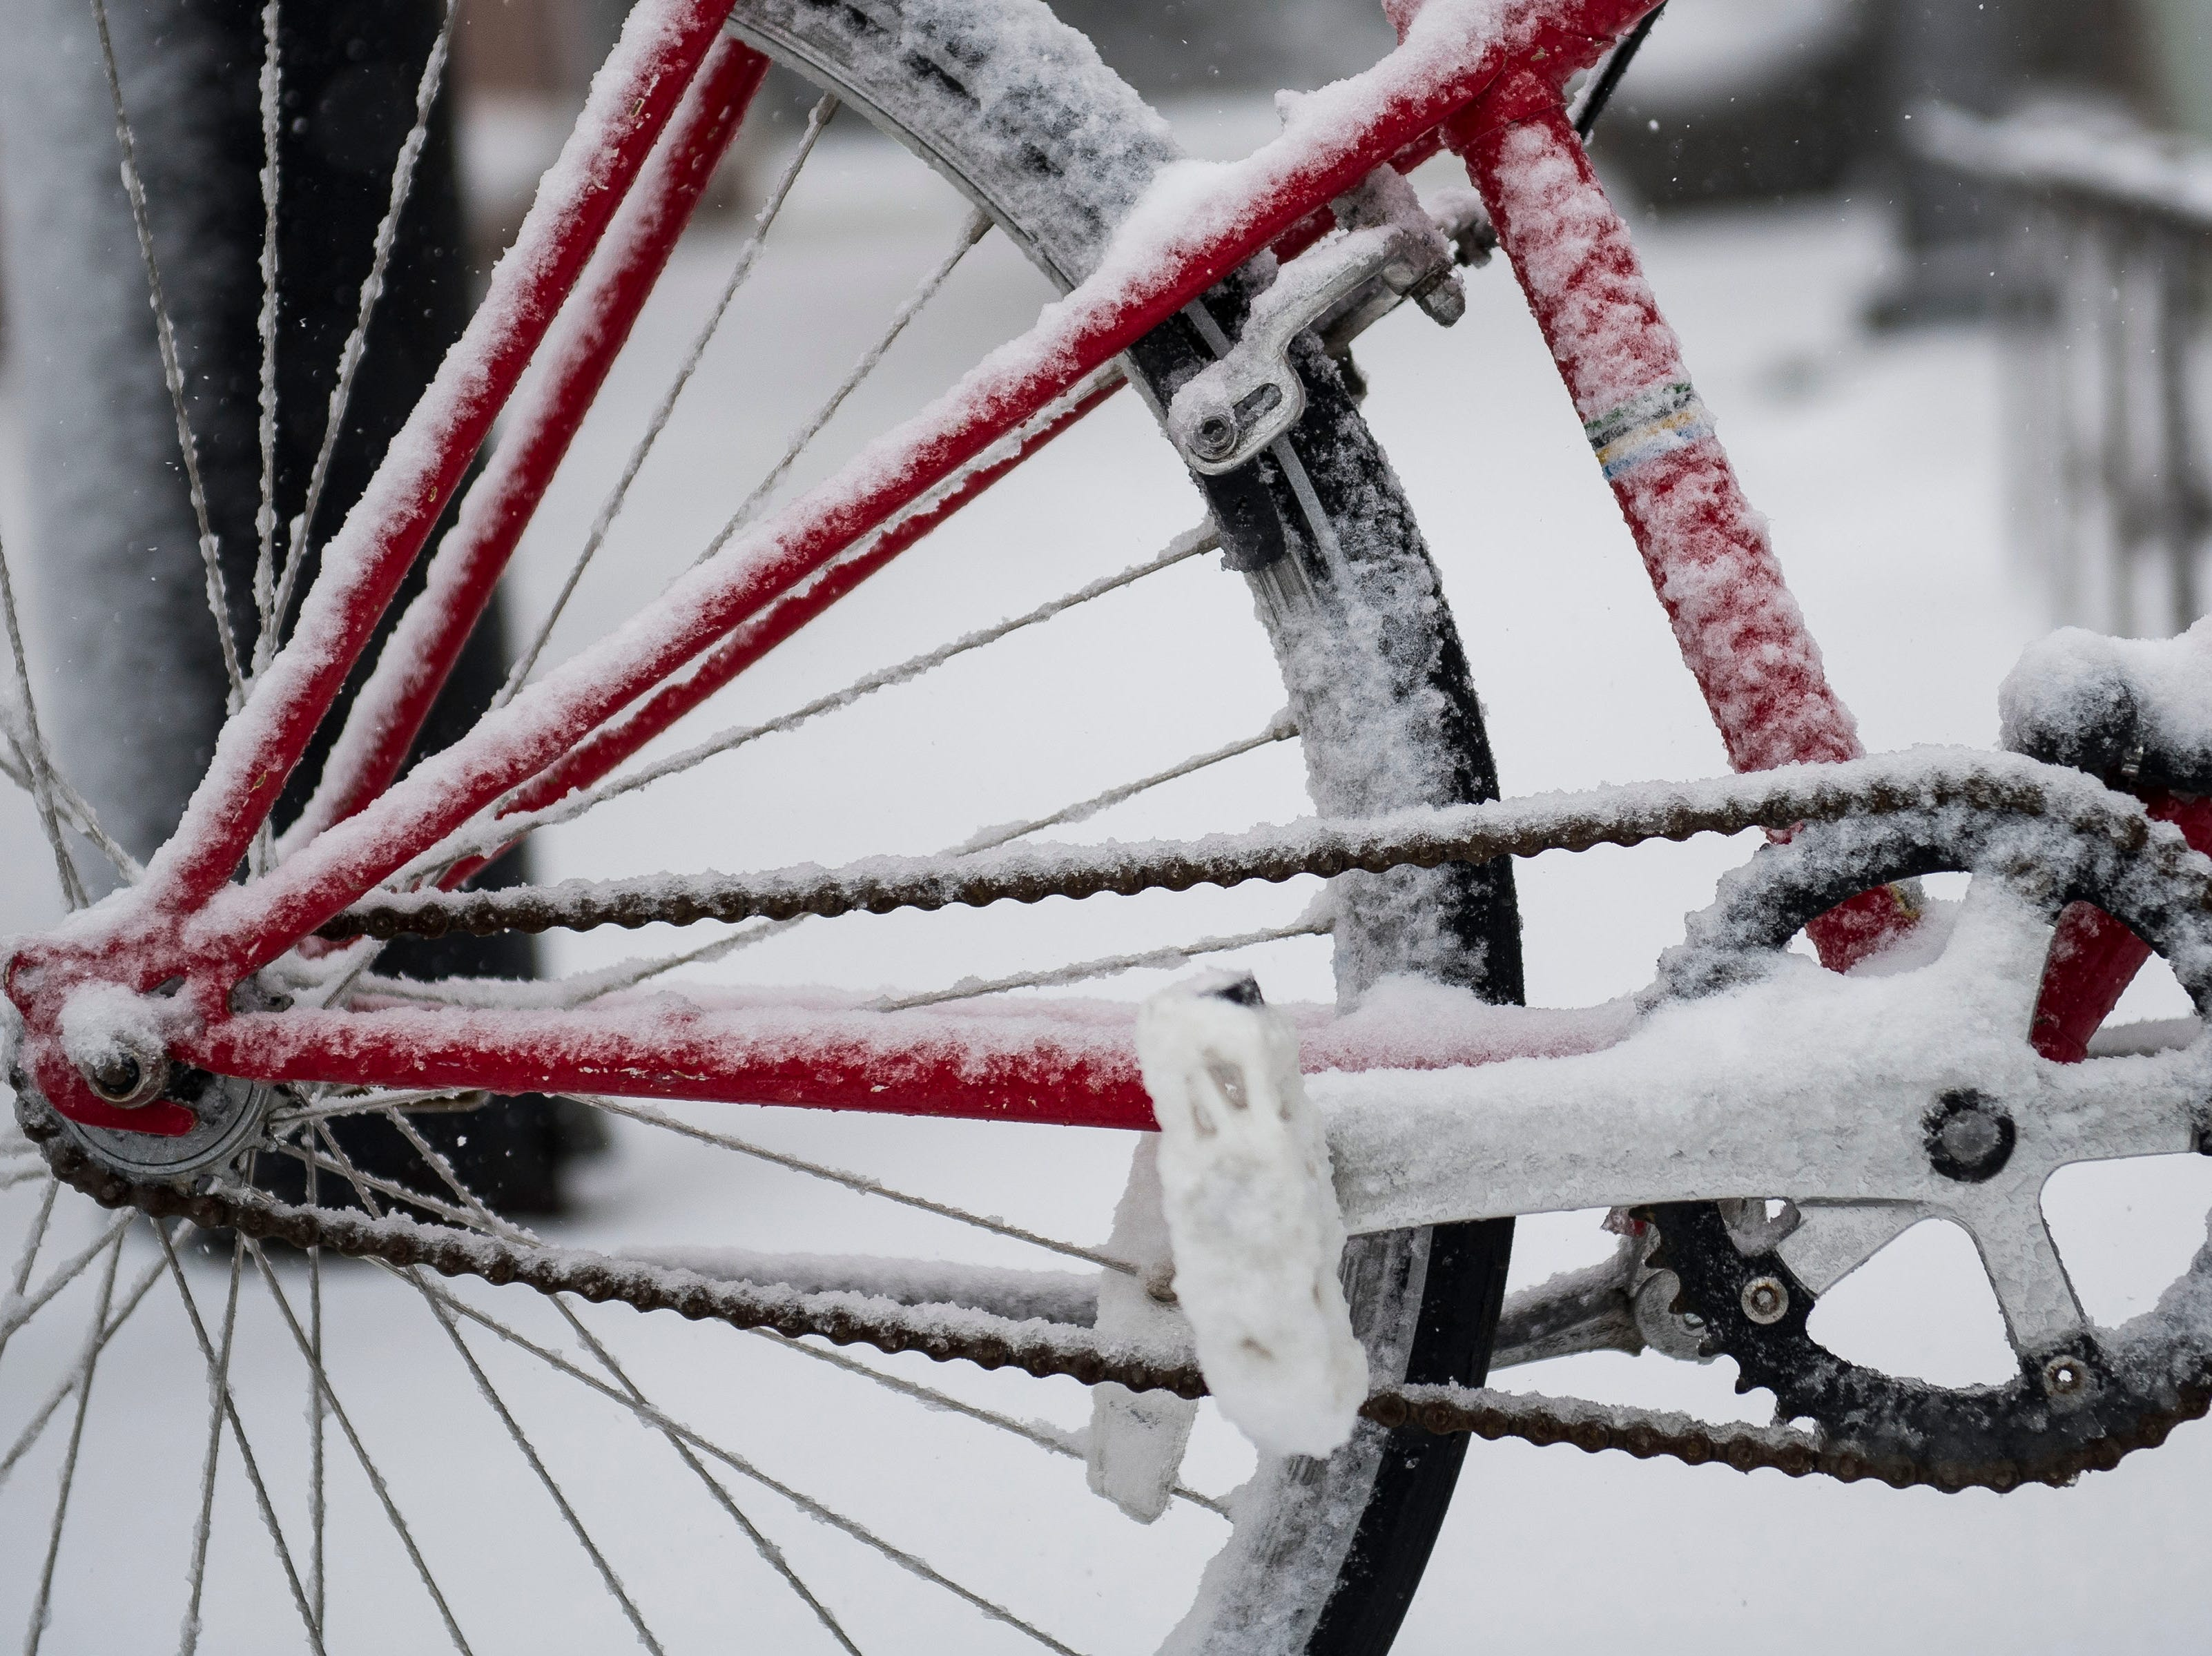 A bike collects snow in Old Town on Wednesday, March 13, 2019, in Fort Collins, Colo.